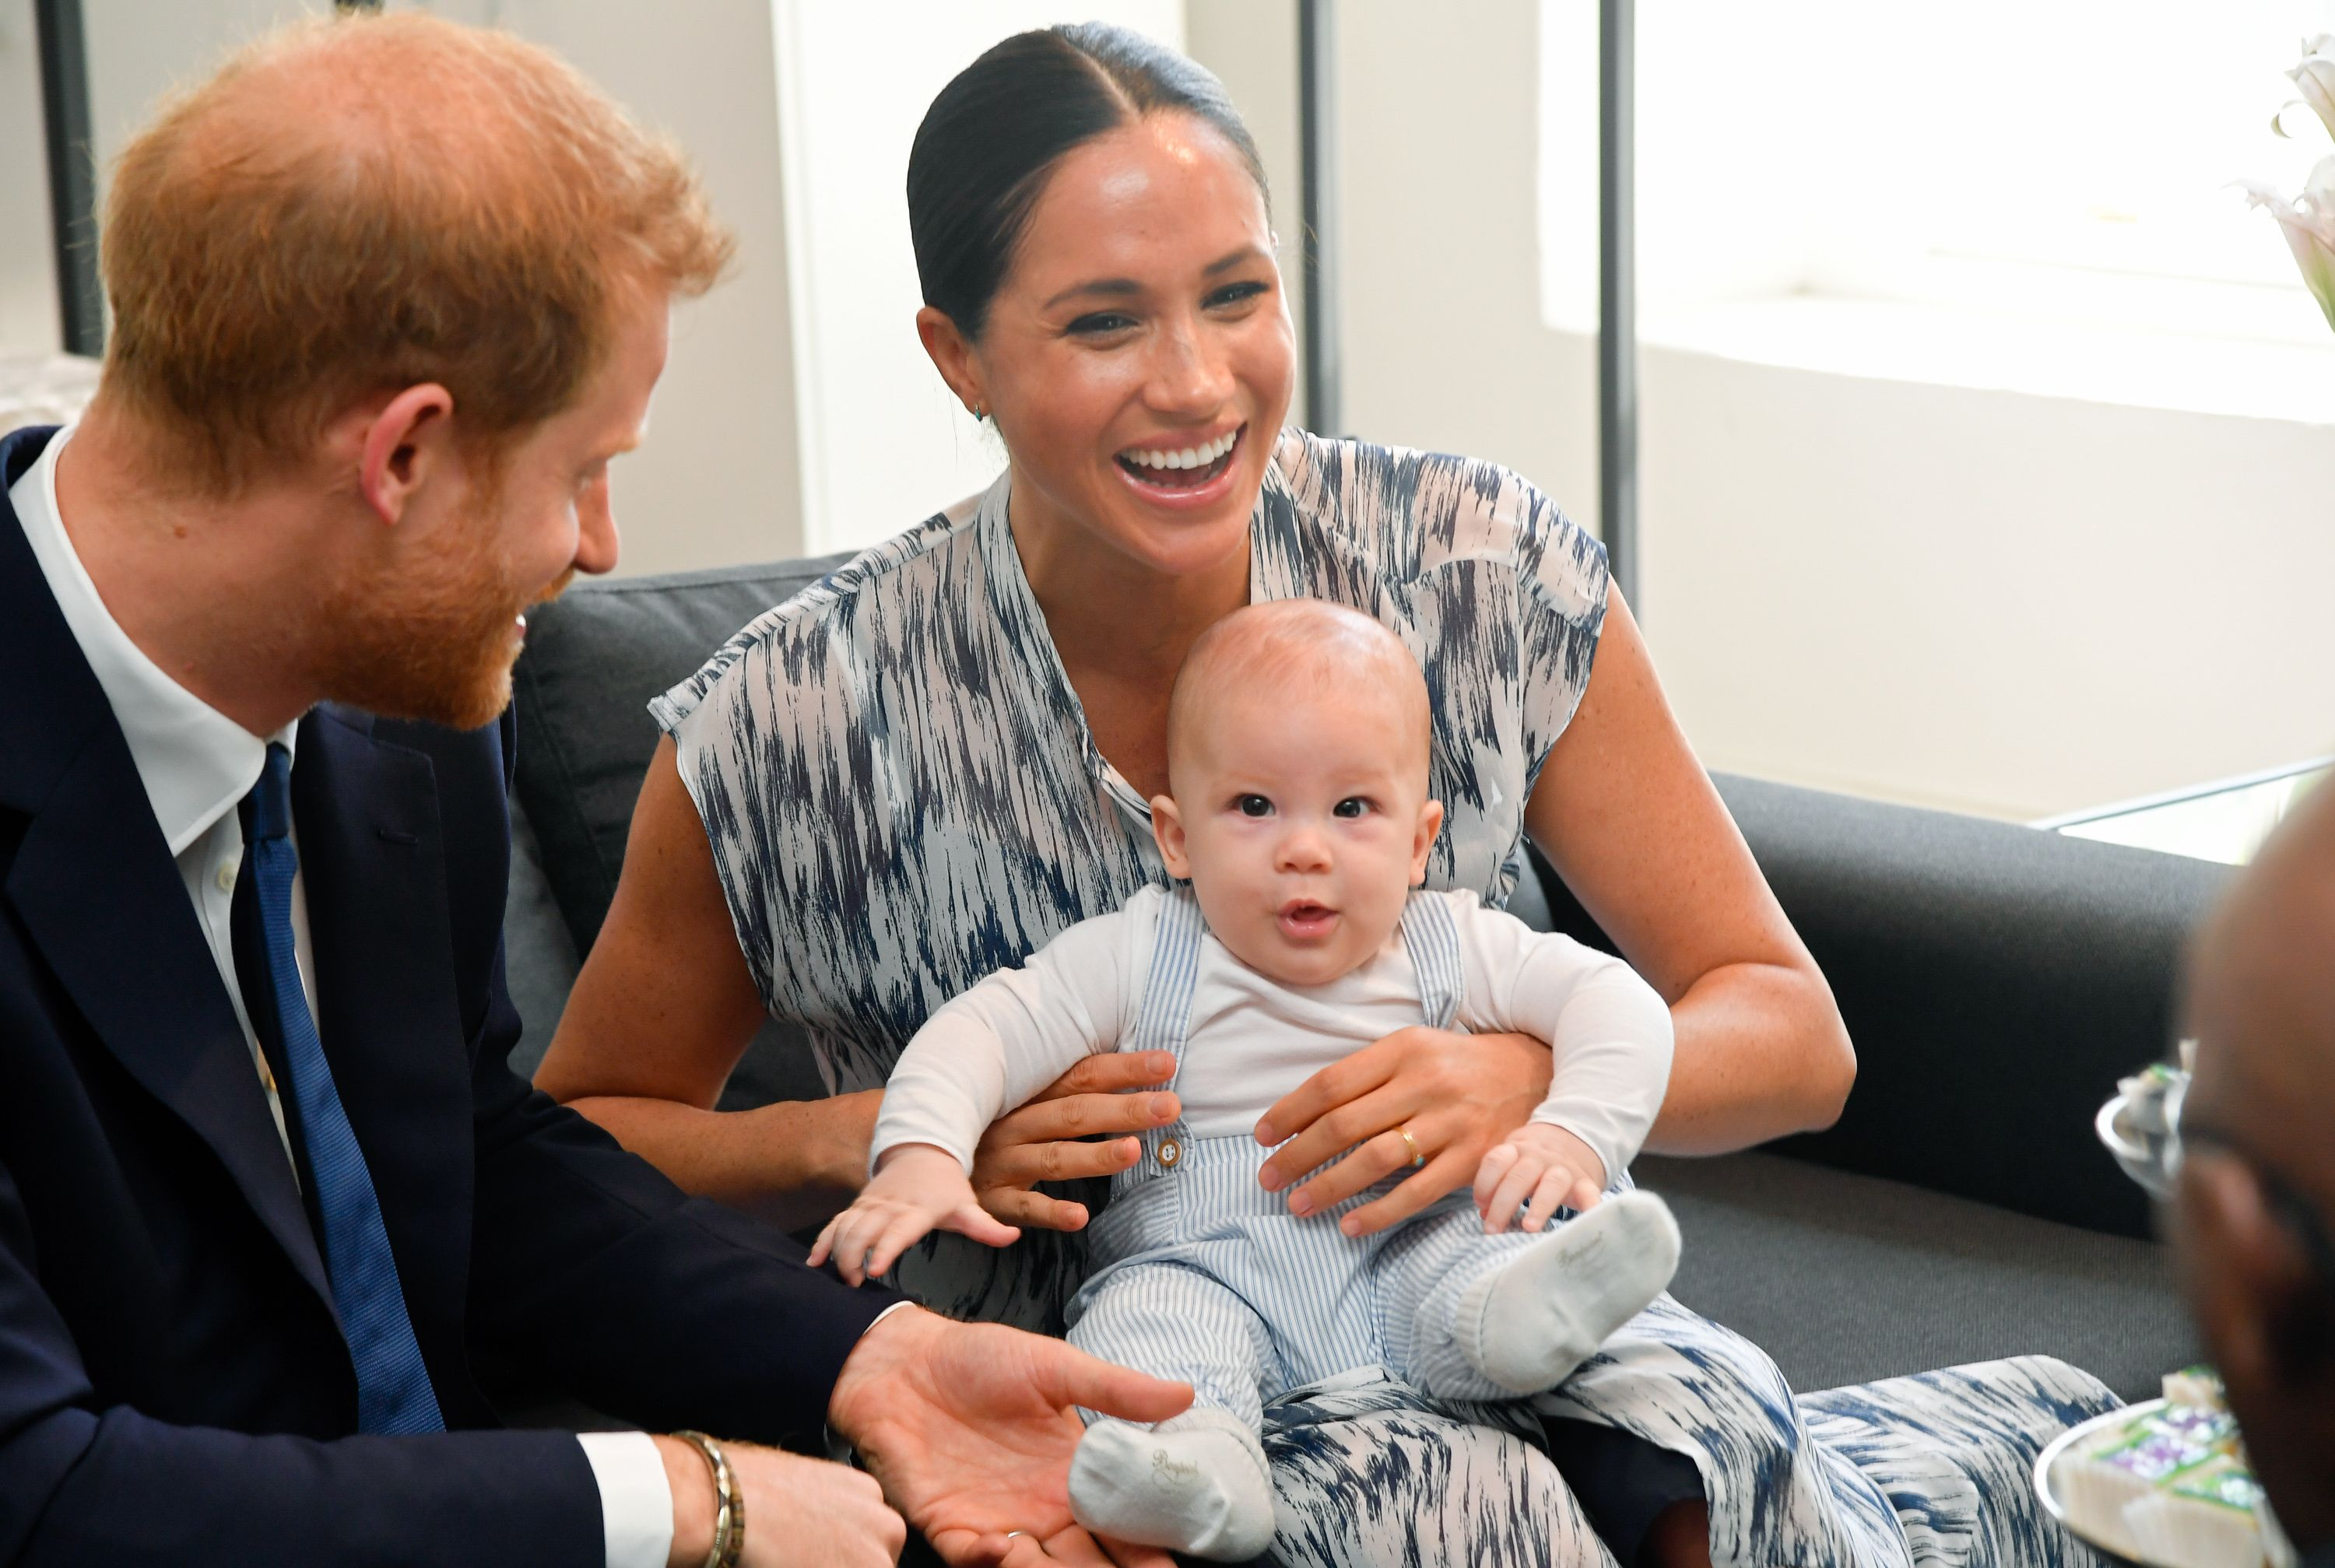 meghan markle prince harry share that archie clearly loves africa in new documentary meghan markle prince harry share that